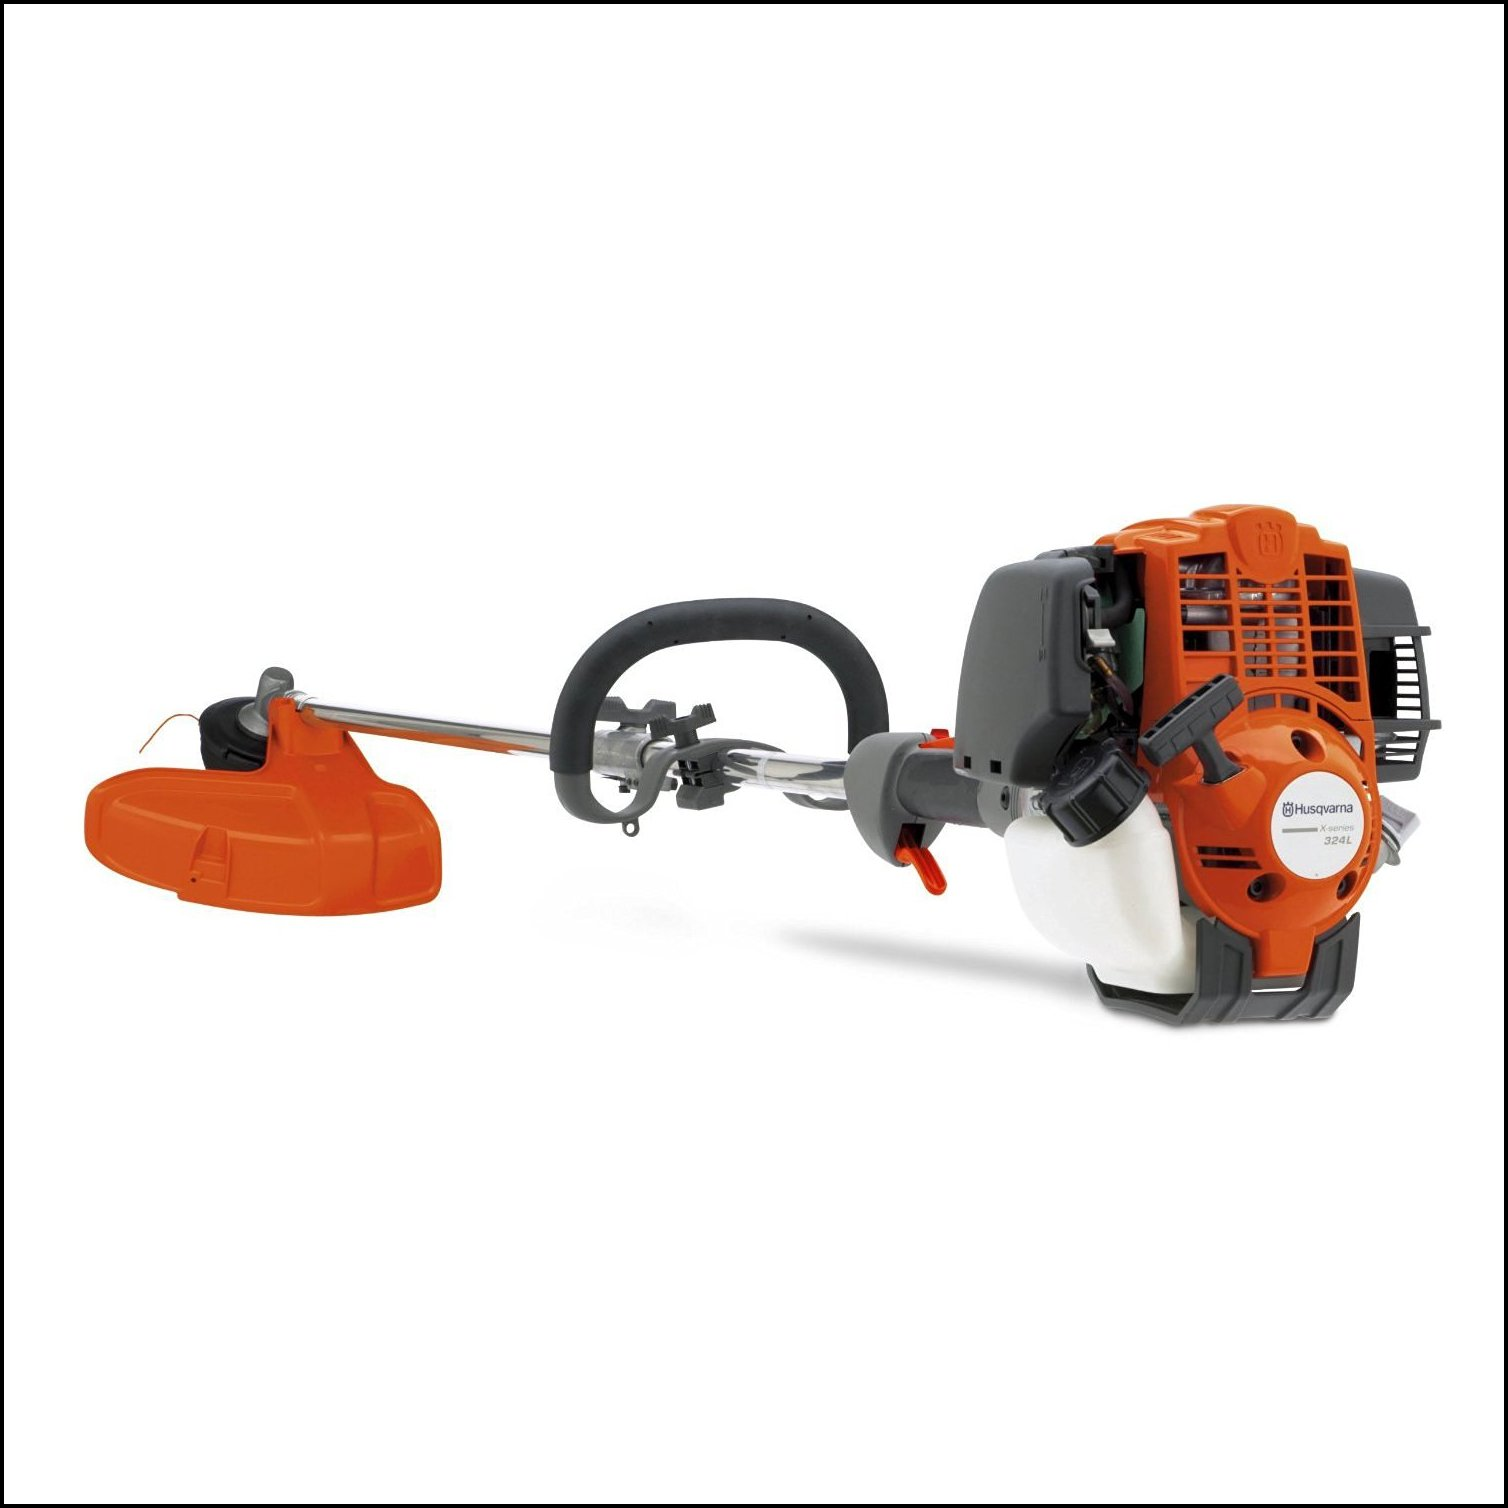 Husqvarna Weed Eater Reviews